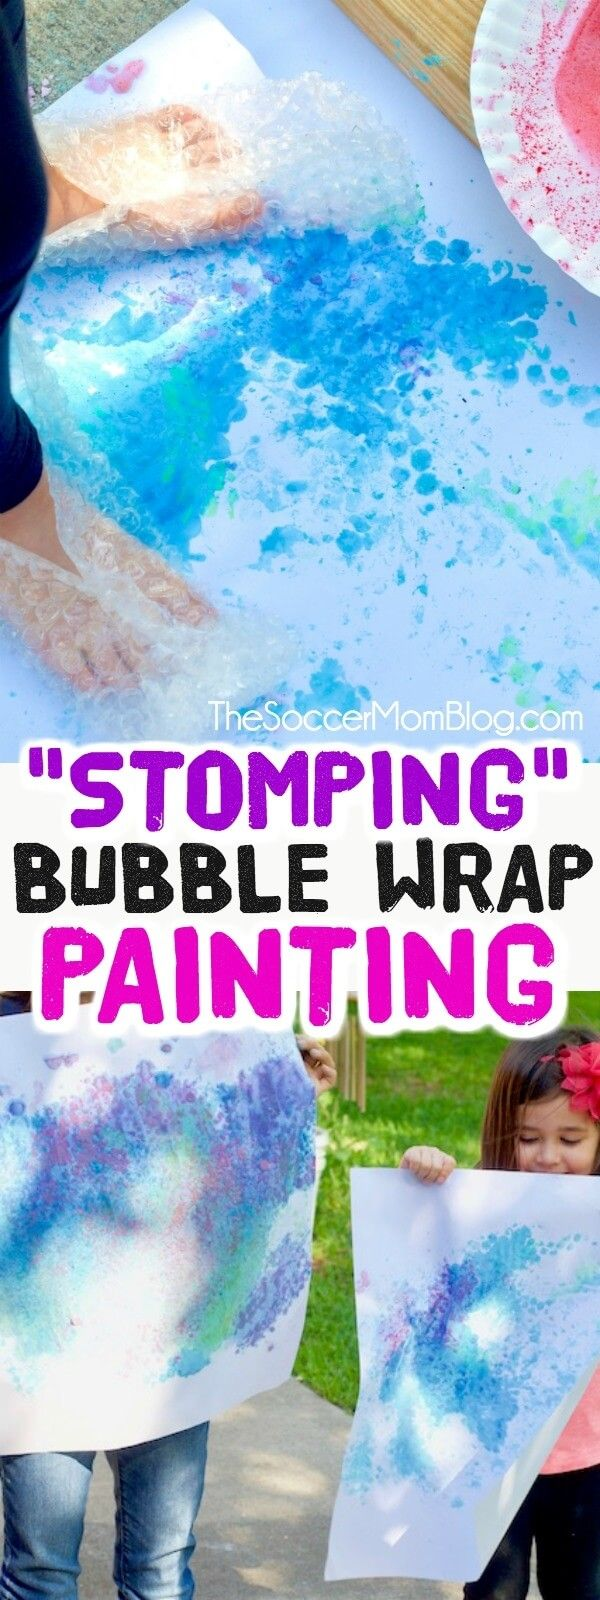 Get active and create vibrant art at the same time with this stomping bubble wrap painting! Click for homemade paint recipe and how to set up this fun outdoor art activity for kids. #art #painting #kids #kidsactivities via @soccermomblog